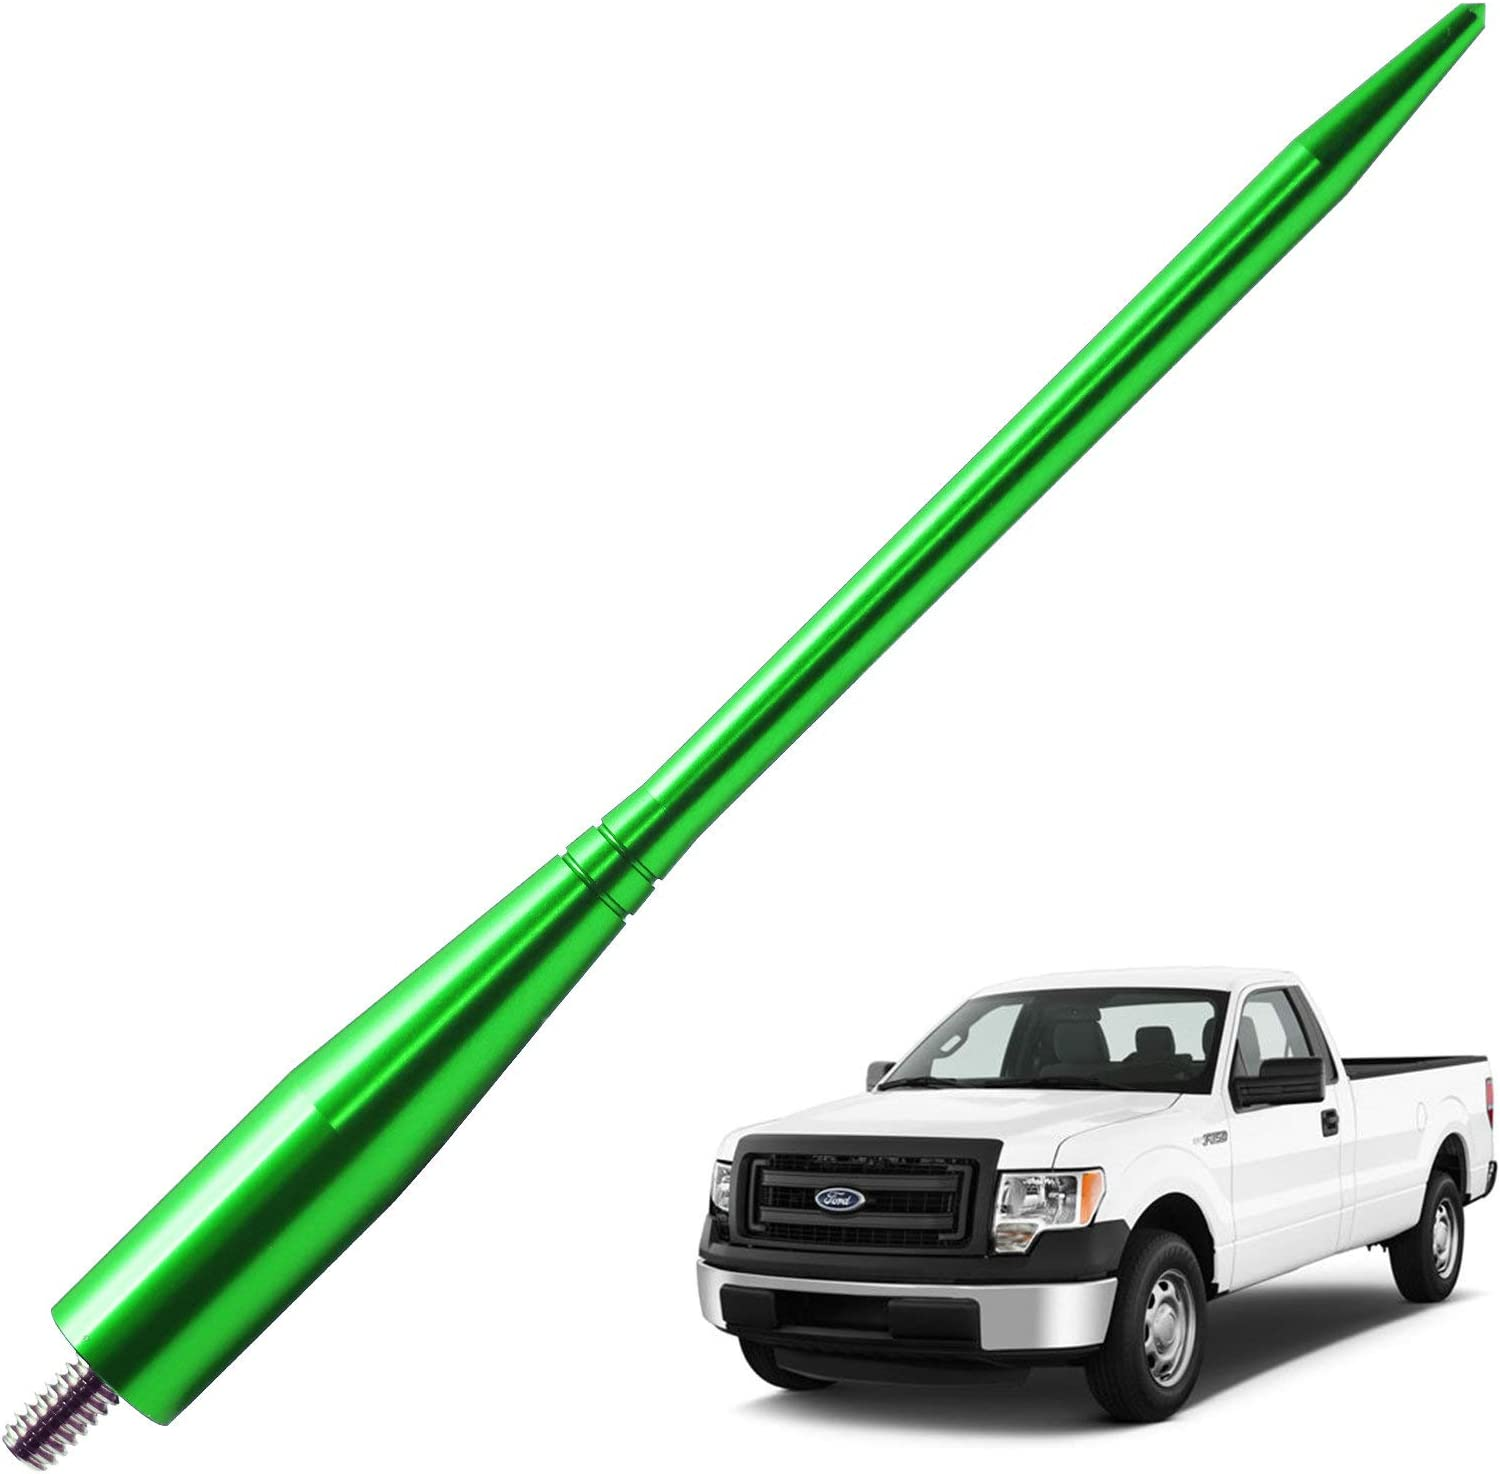 6.75 inches-Green JAPower Replacement Antenna Compatible with GMC Terrain 2010-2018